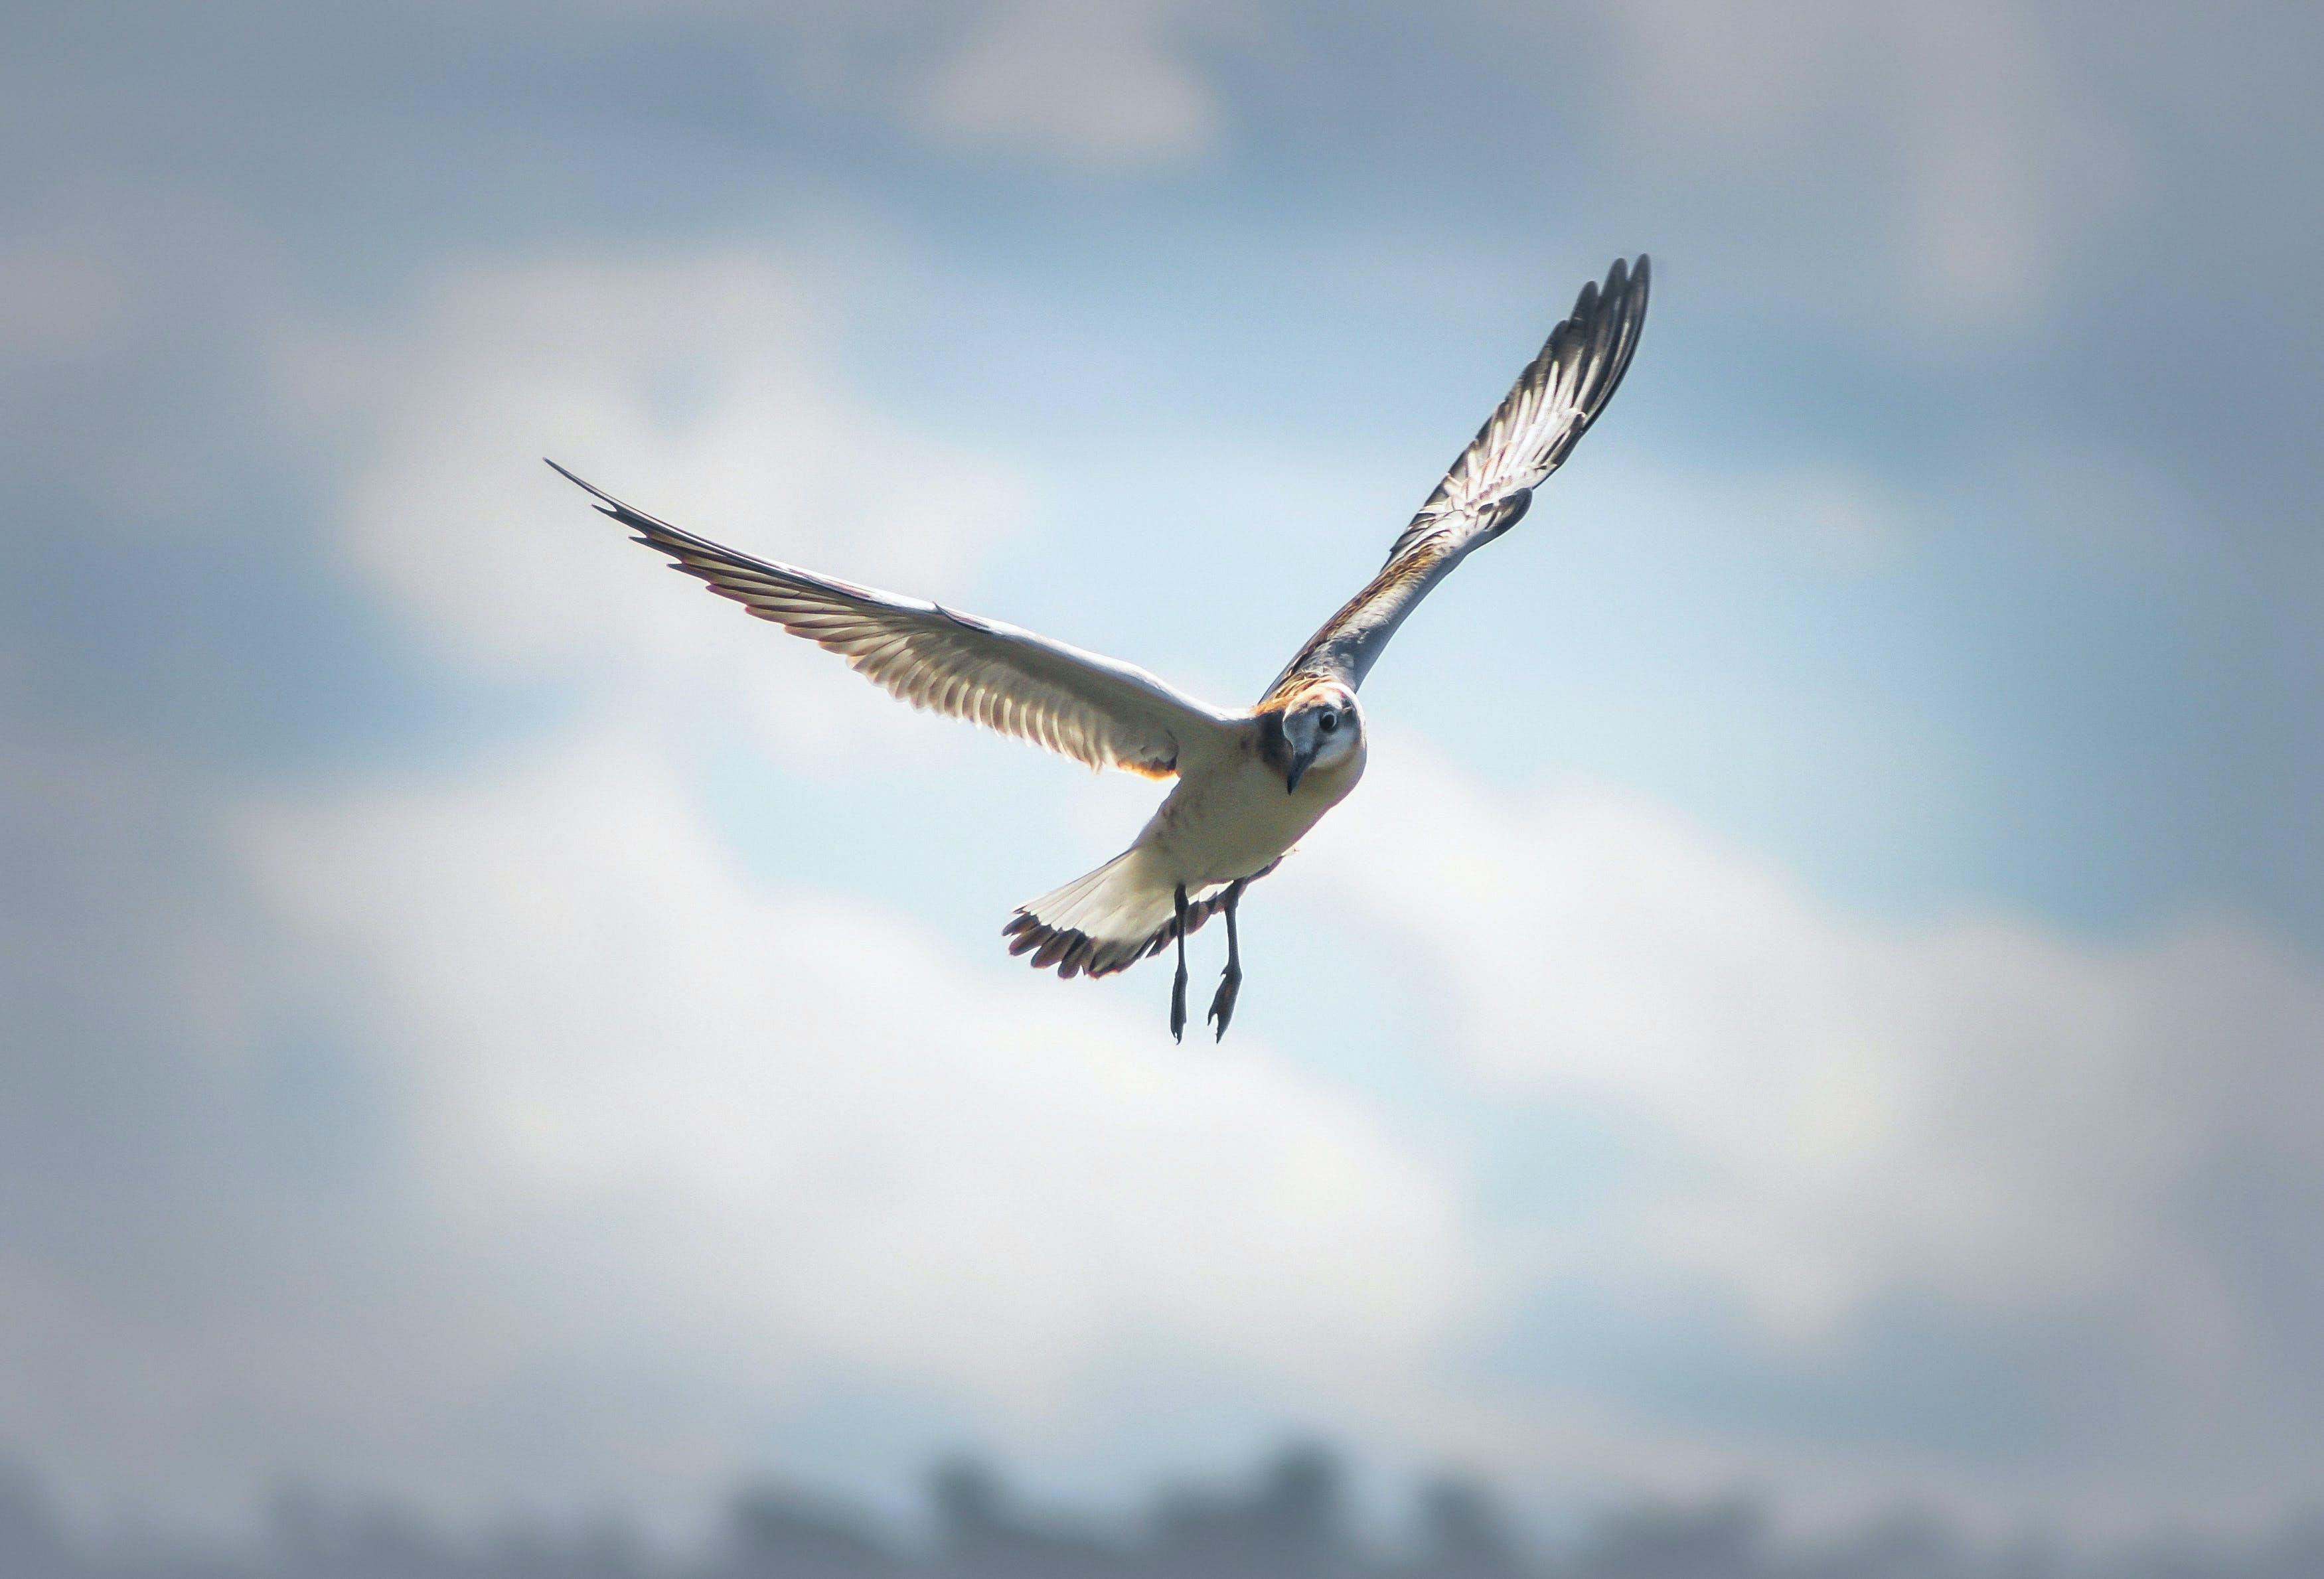 Photo of a Flying Laughing Gull